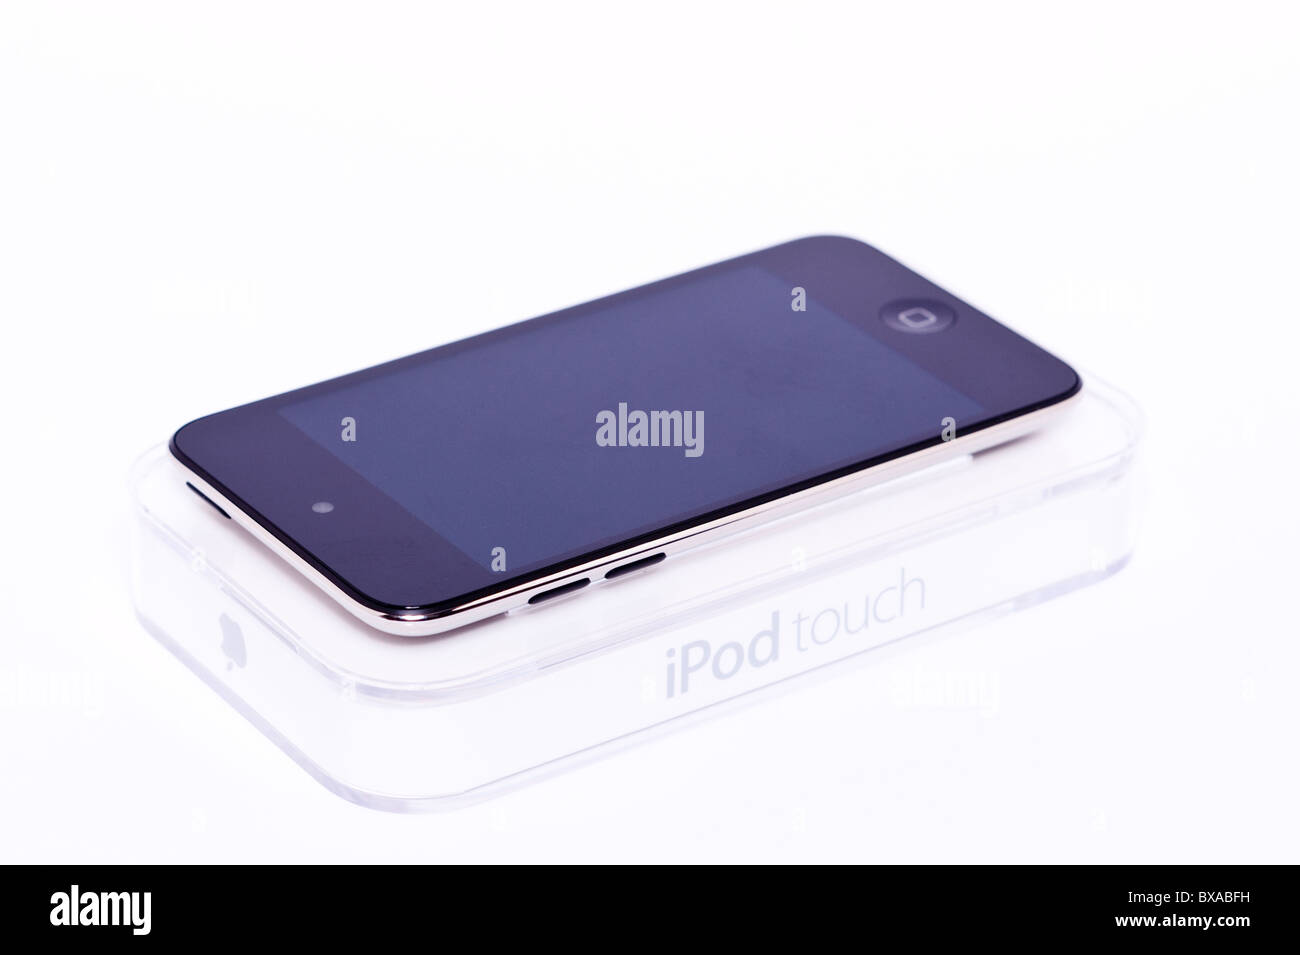 The new Apple Ipod touch 4th generation 4G 32gb media player on a white background - Stock Image